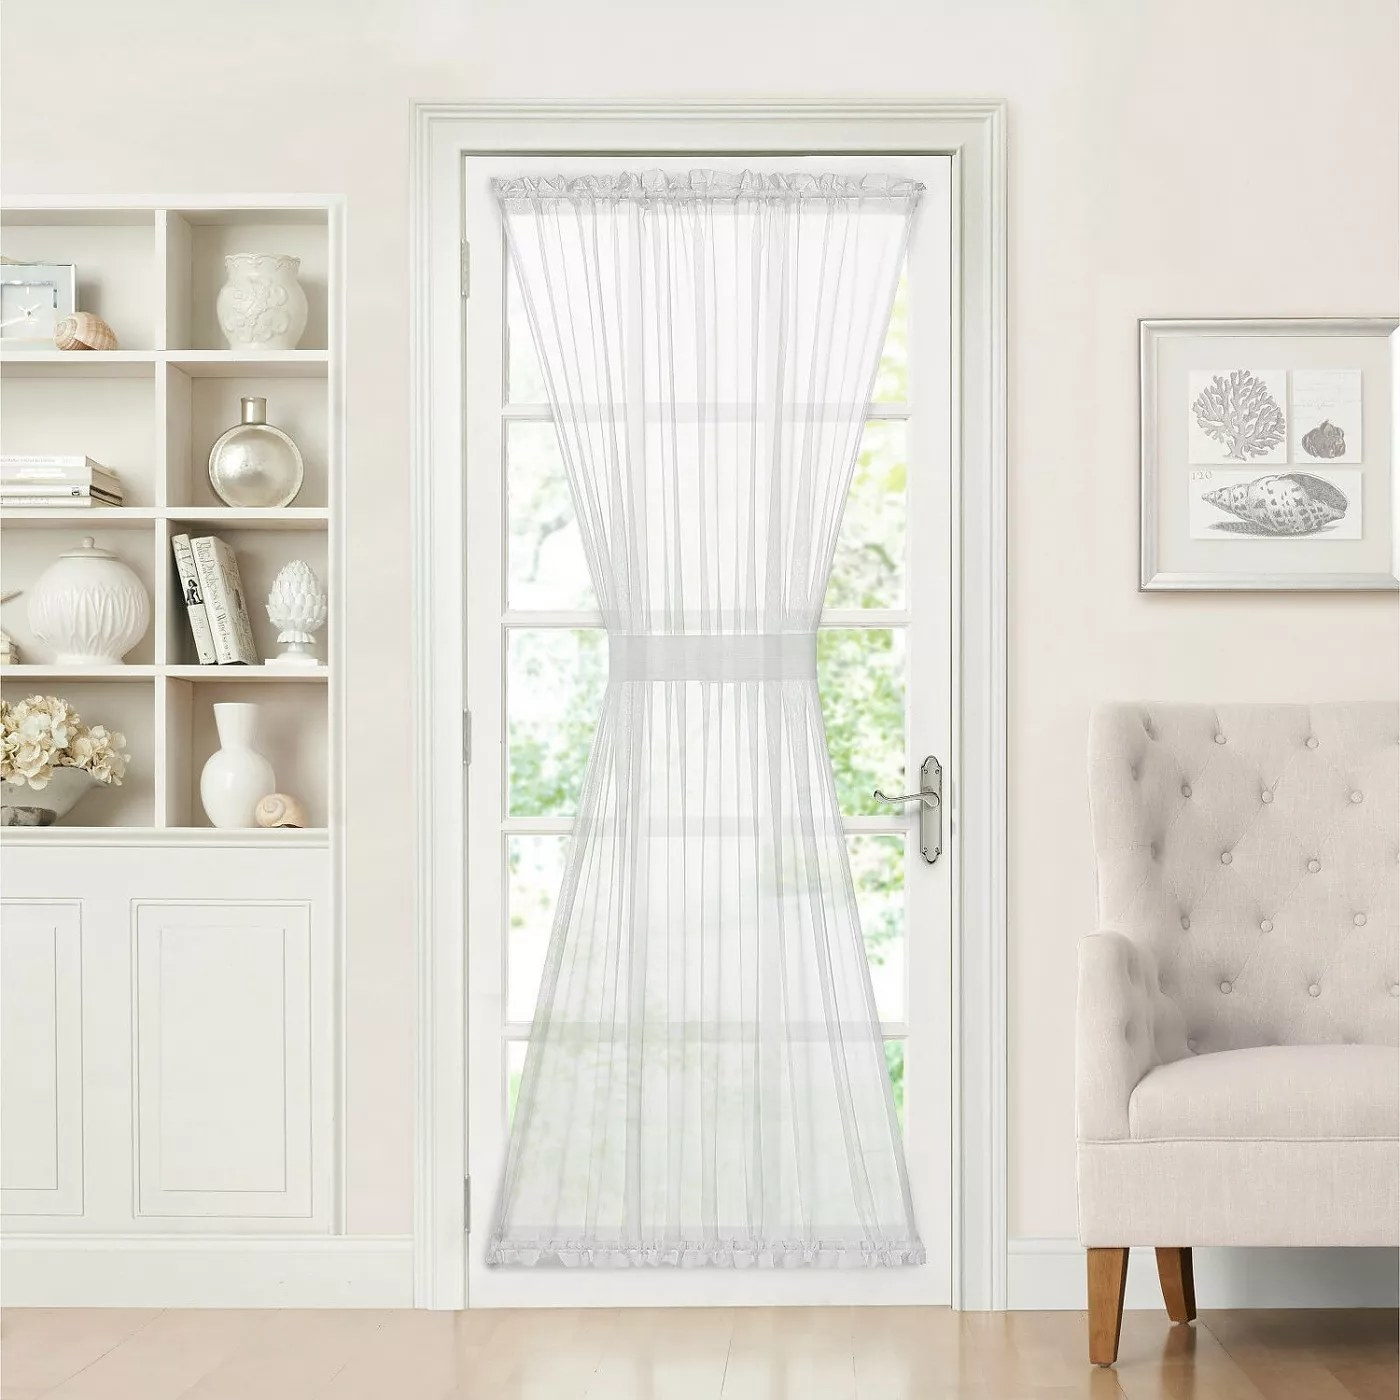 The white curtain panel with a tie-back band